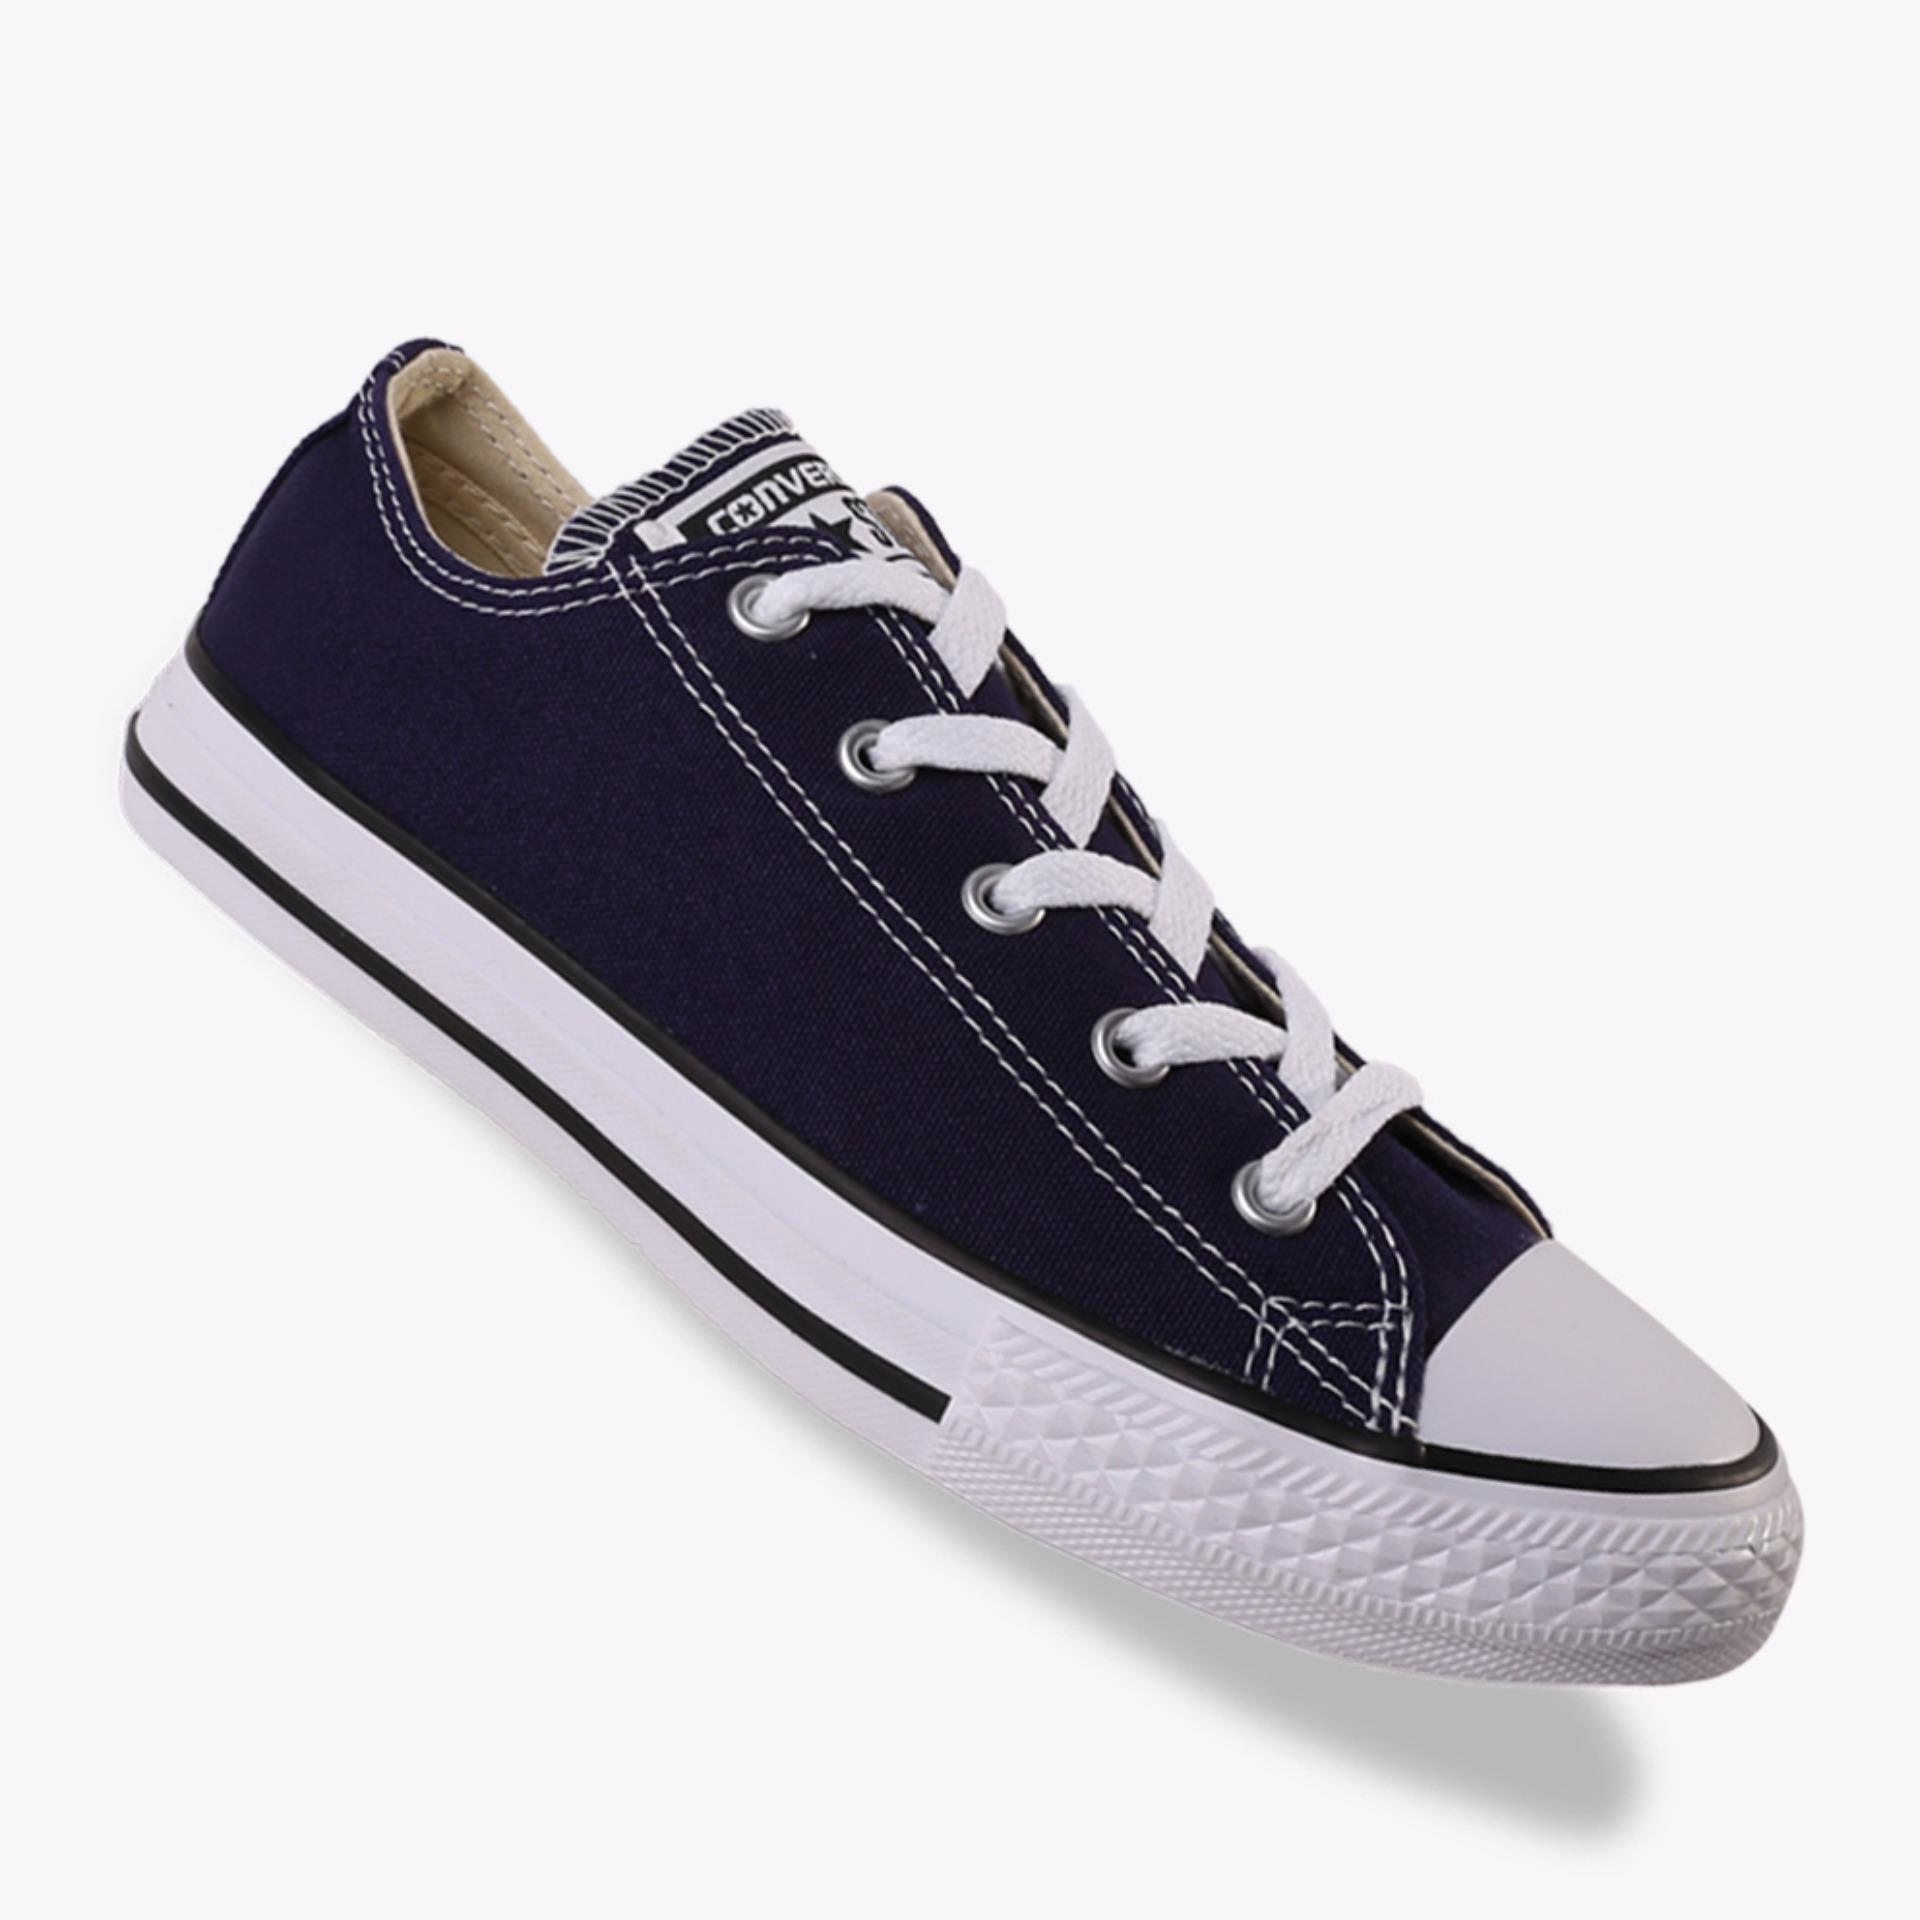 Jual Converse Chuck Taylor All Star Ox Boy S Sneakers Shoes Navy Converse Asli